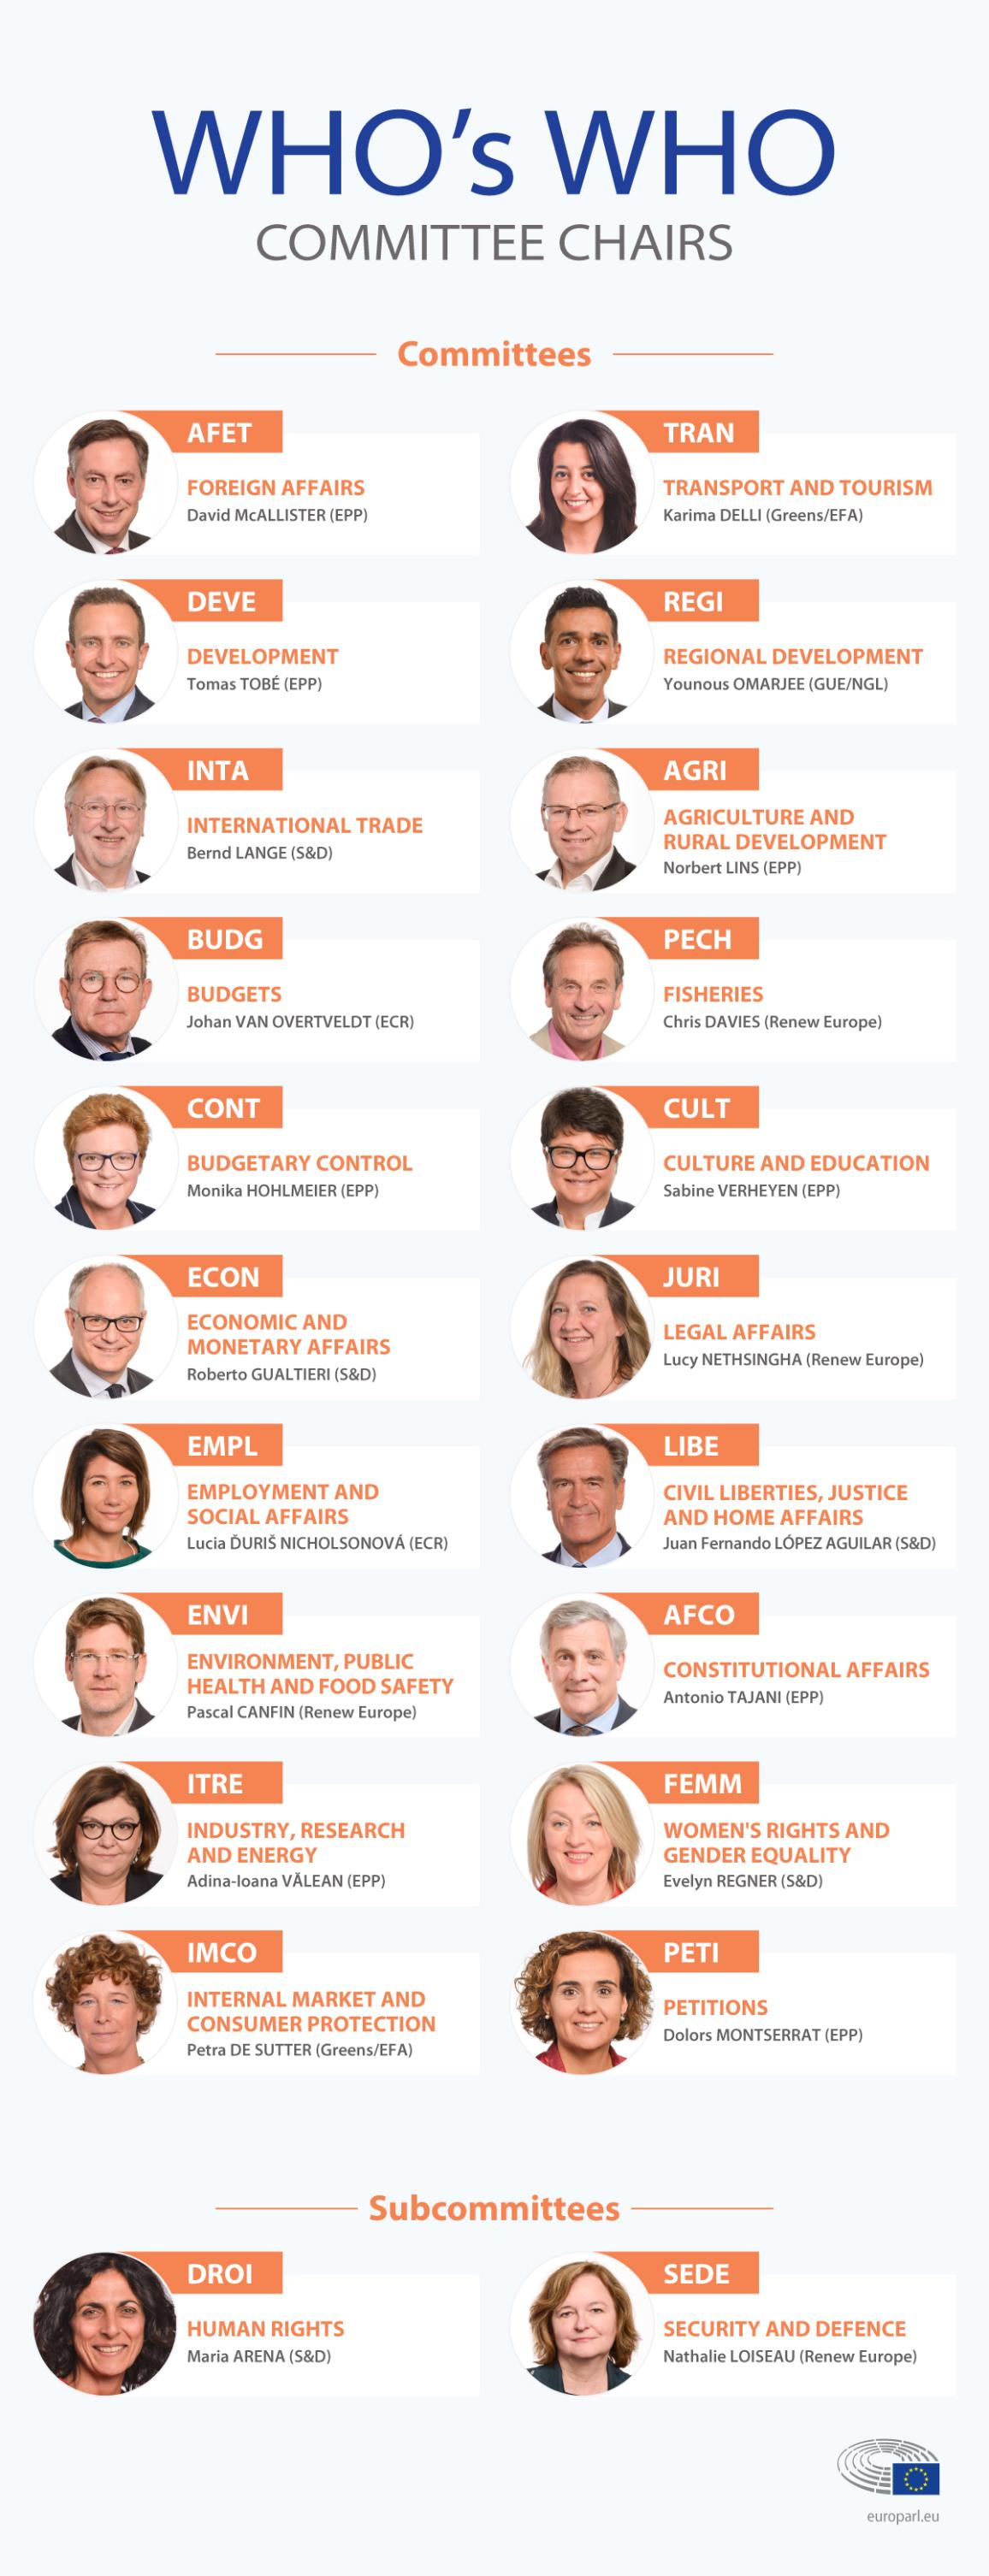 Infographic giving an overview of the different committee chairs